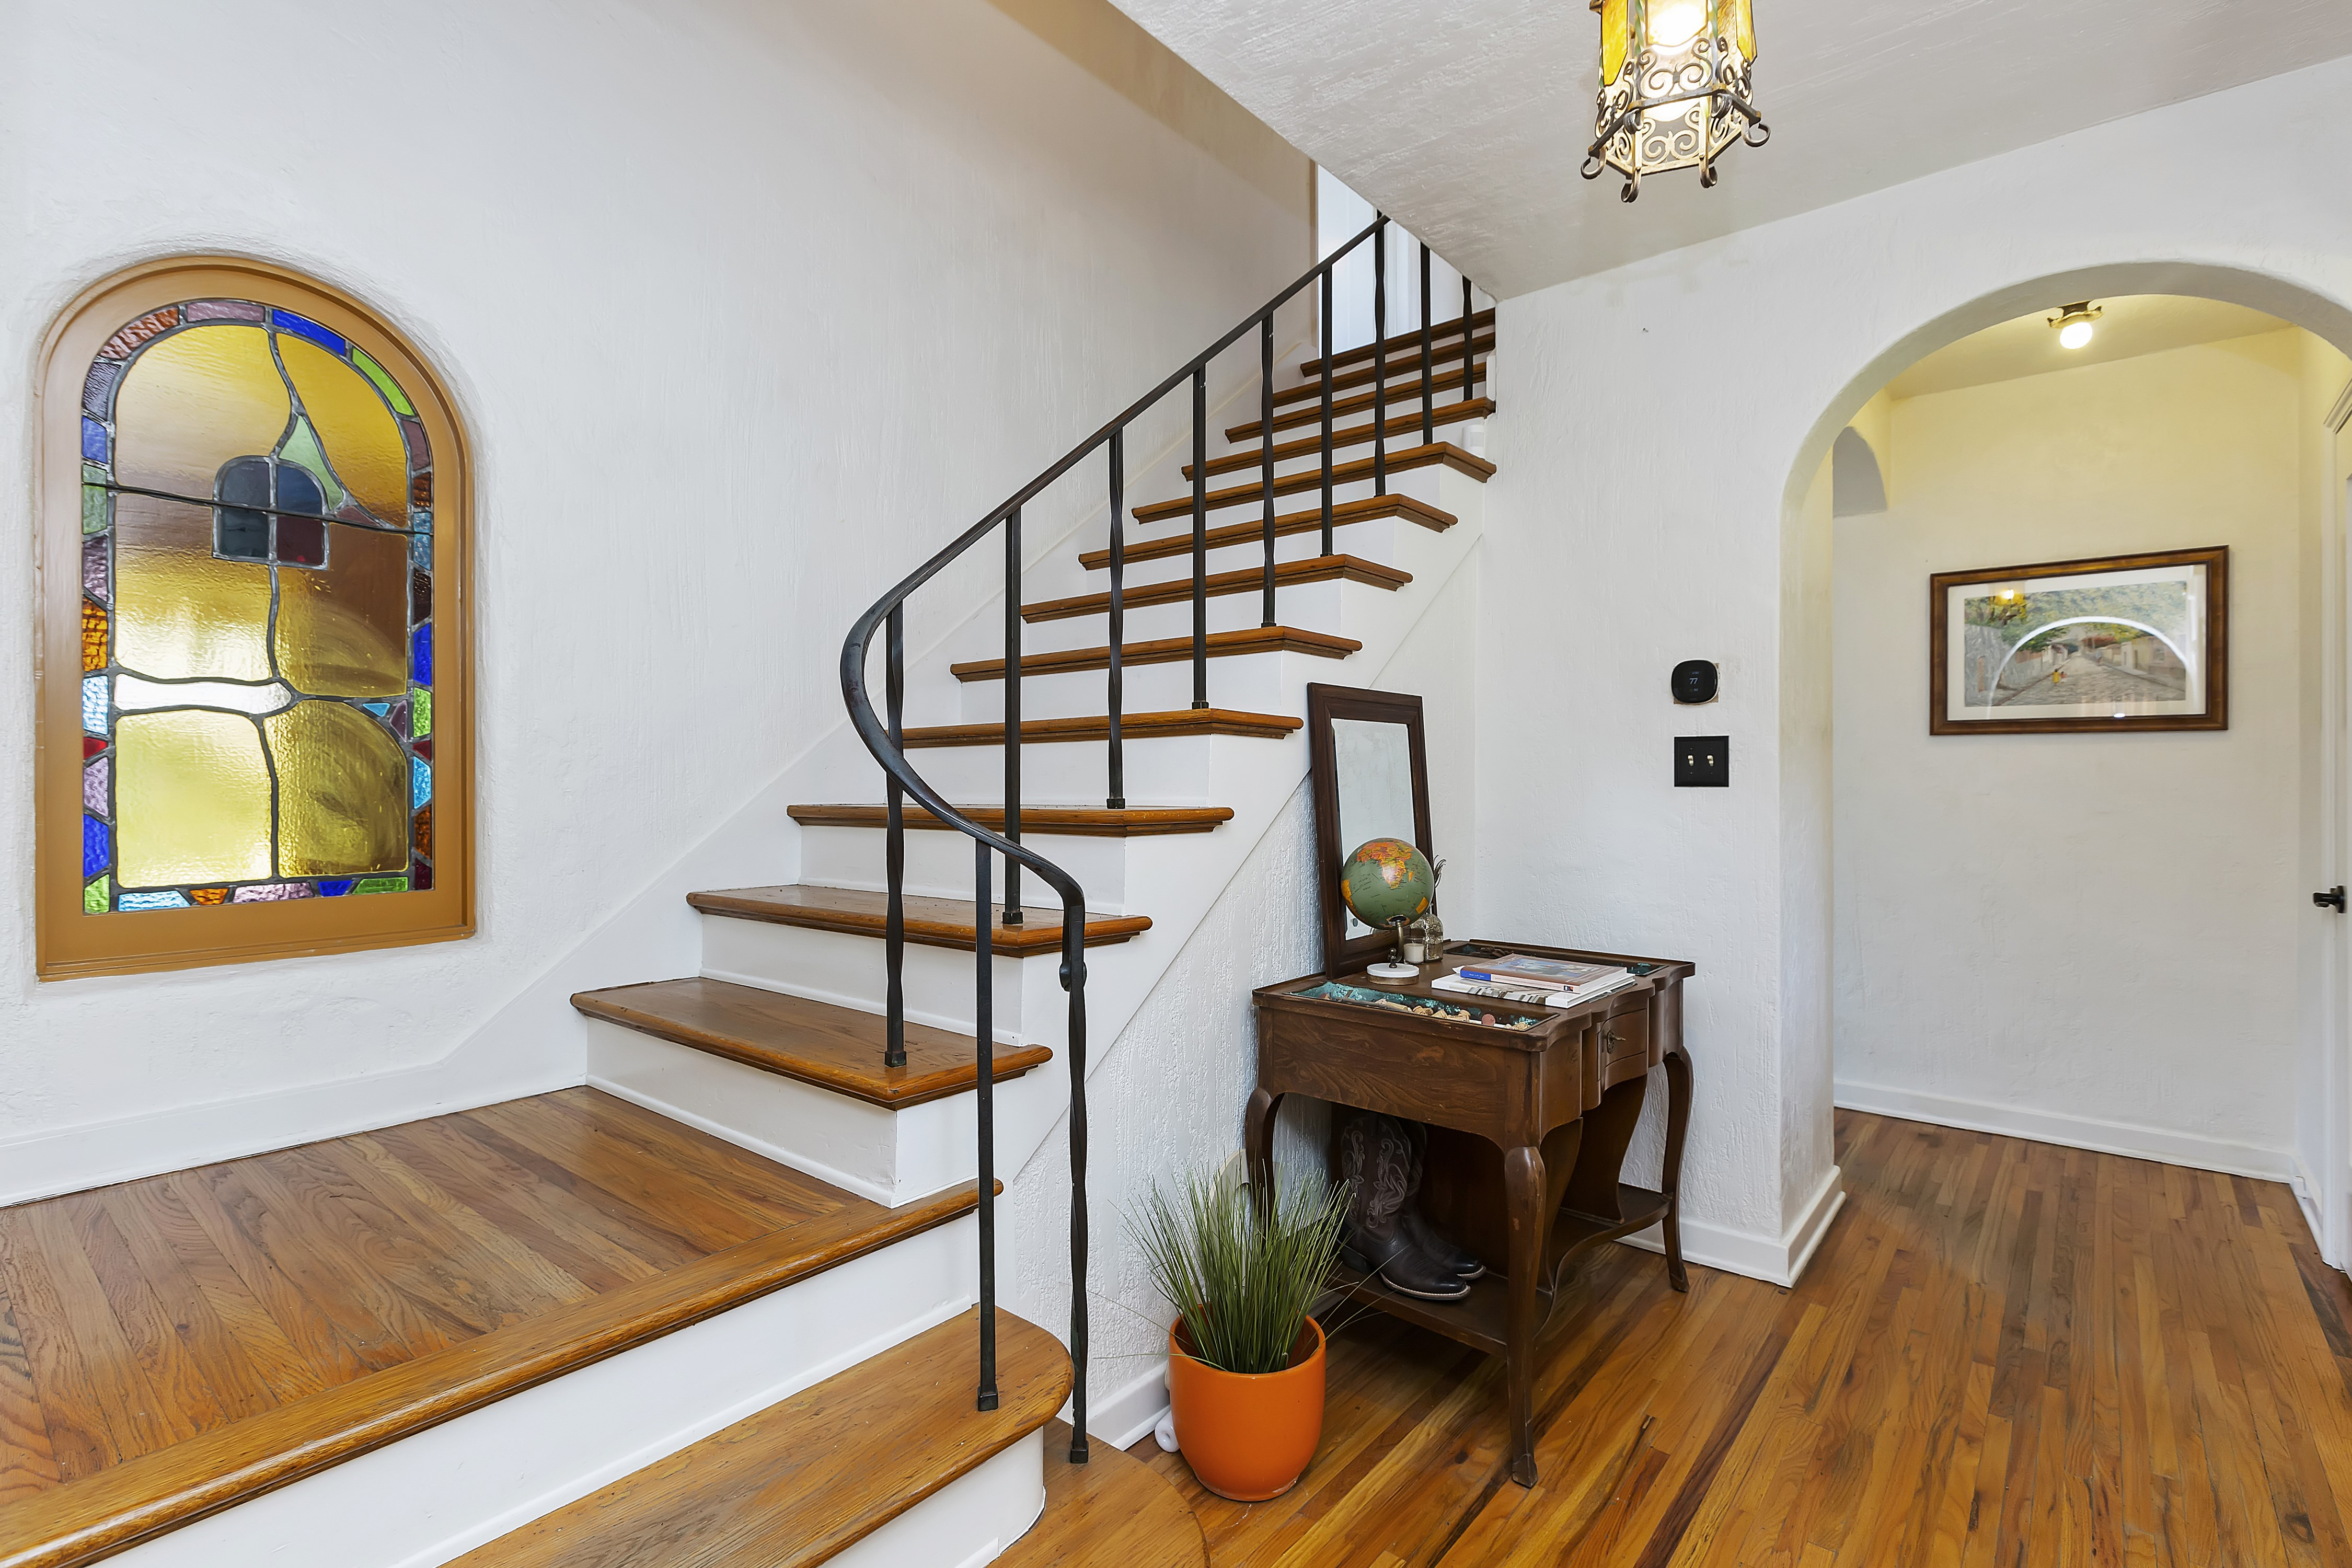 011_Staircase with Stainglass